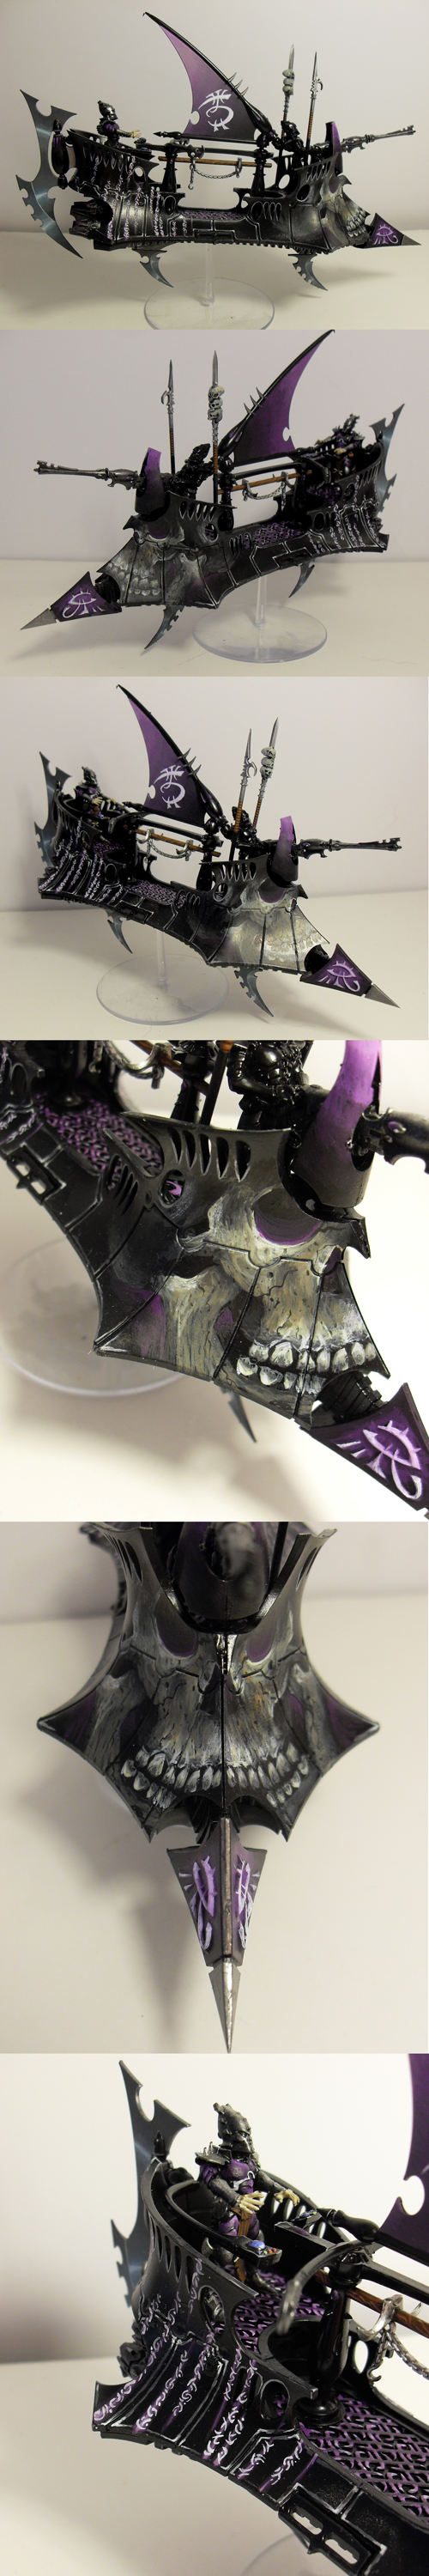 Blending, Dark, Dark Eldar, Freehand, Non-Metallic Metal, Raider, Skull, Vehicle, Warhammer 40,000